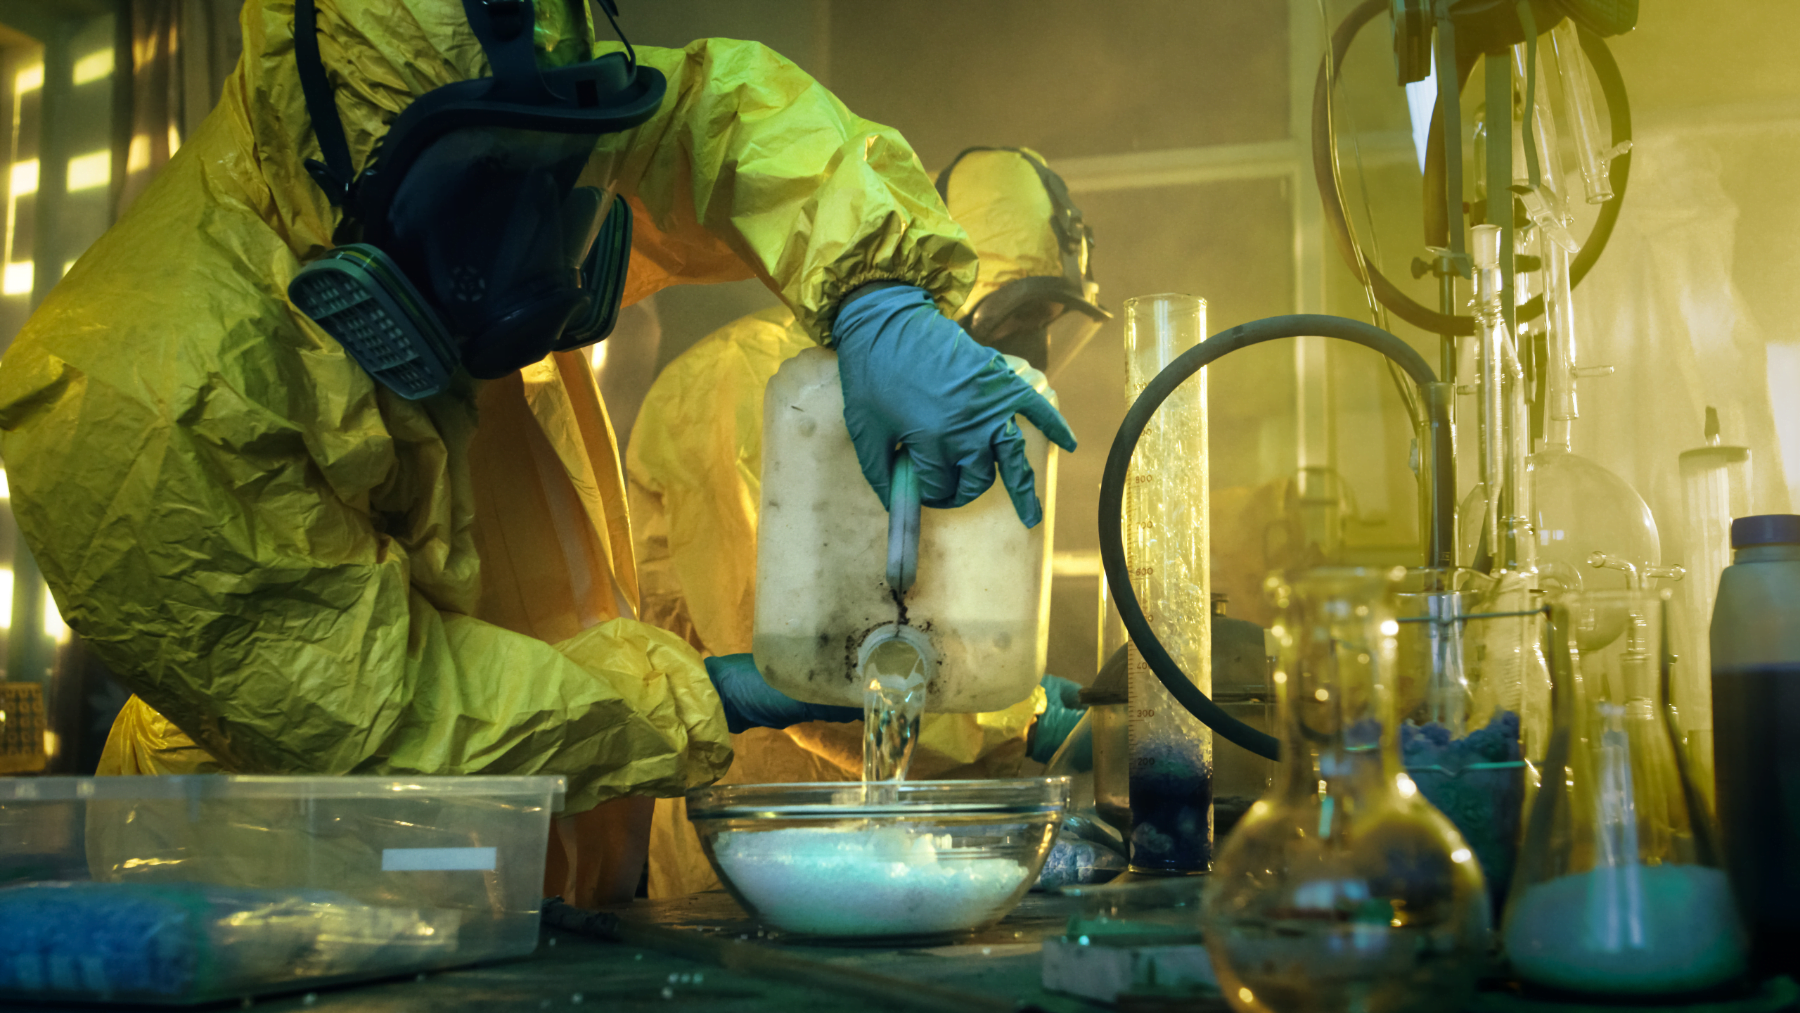 Ice production in a meth laboratory